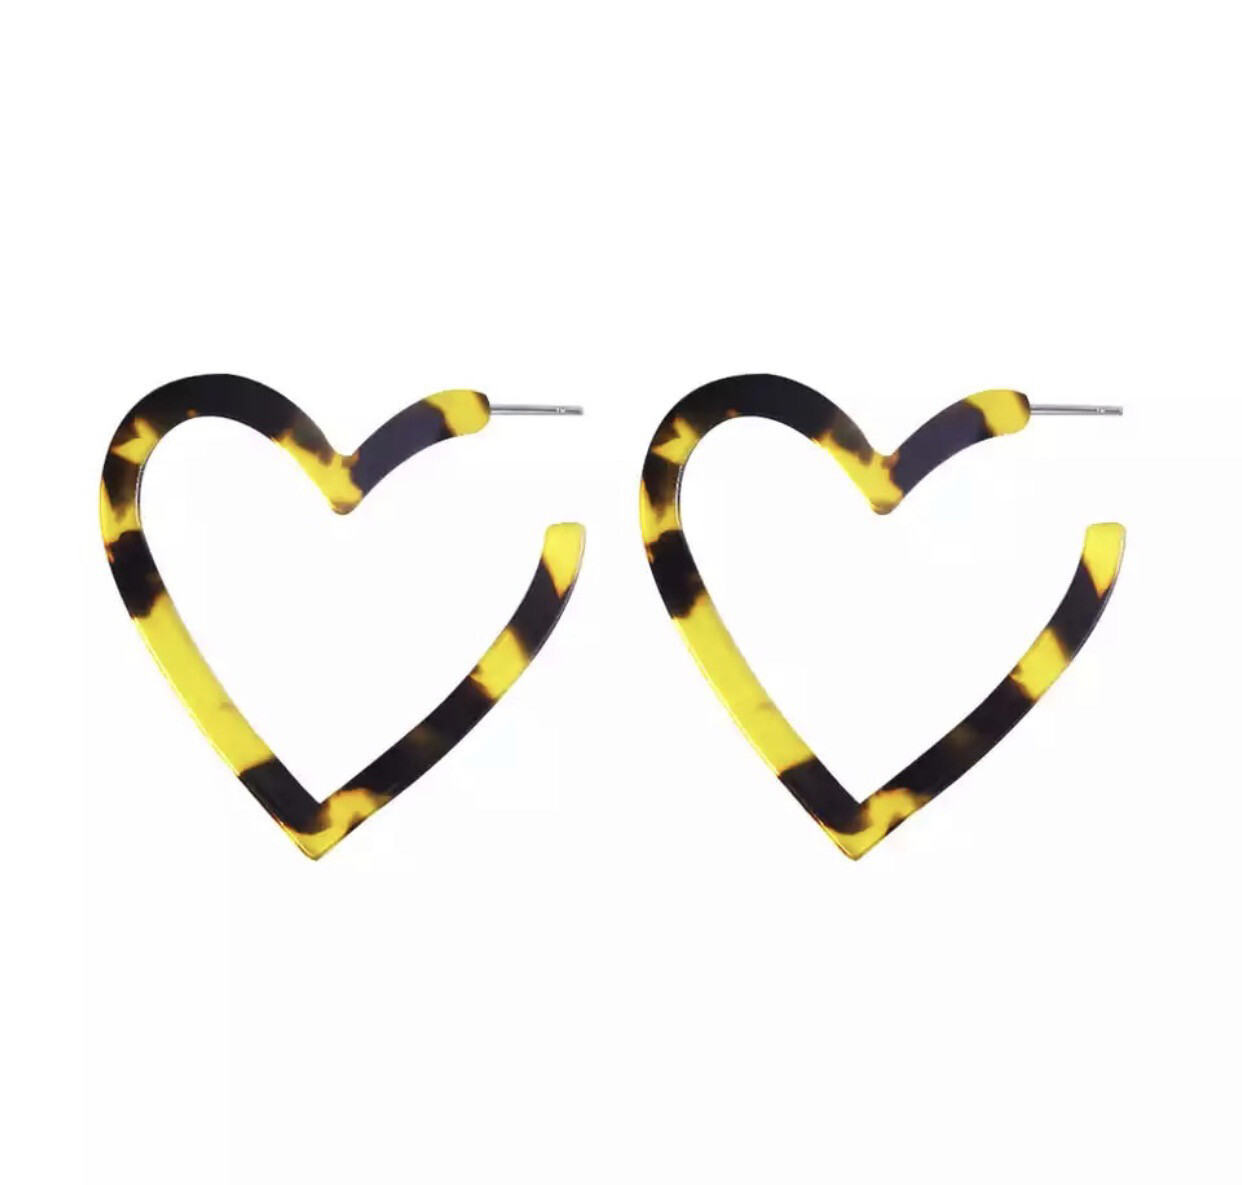 Harriet Heart Hoop Earrings